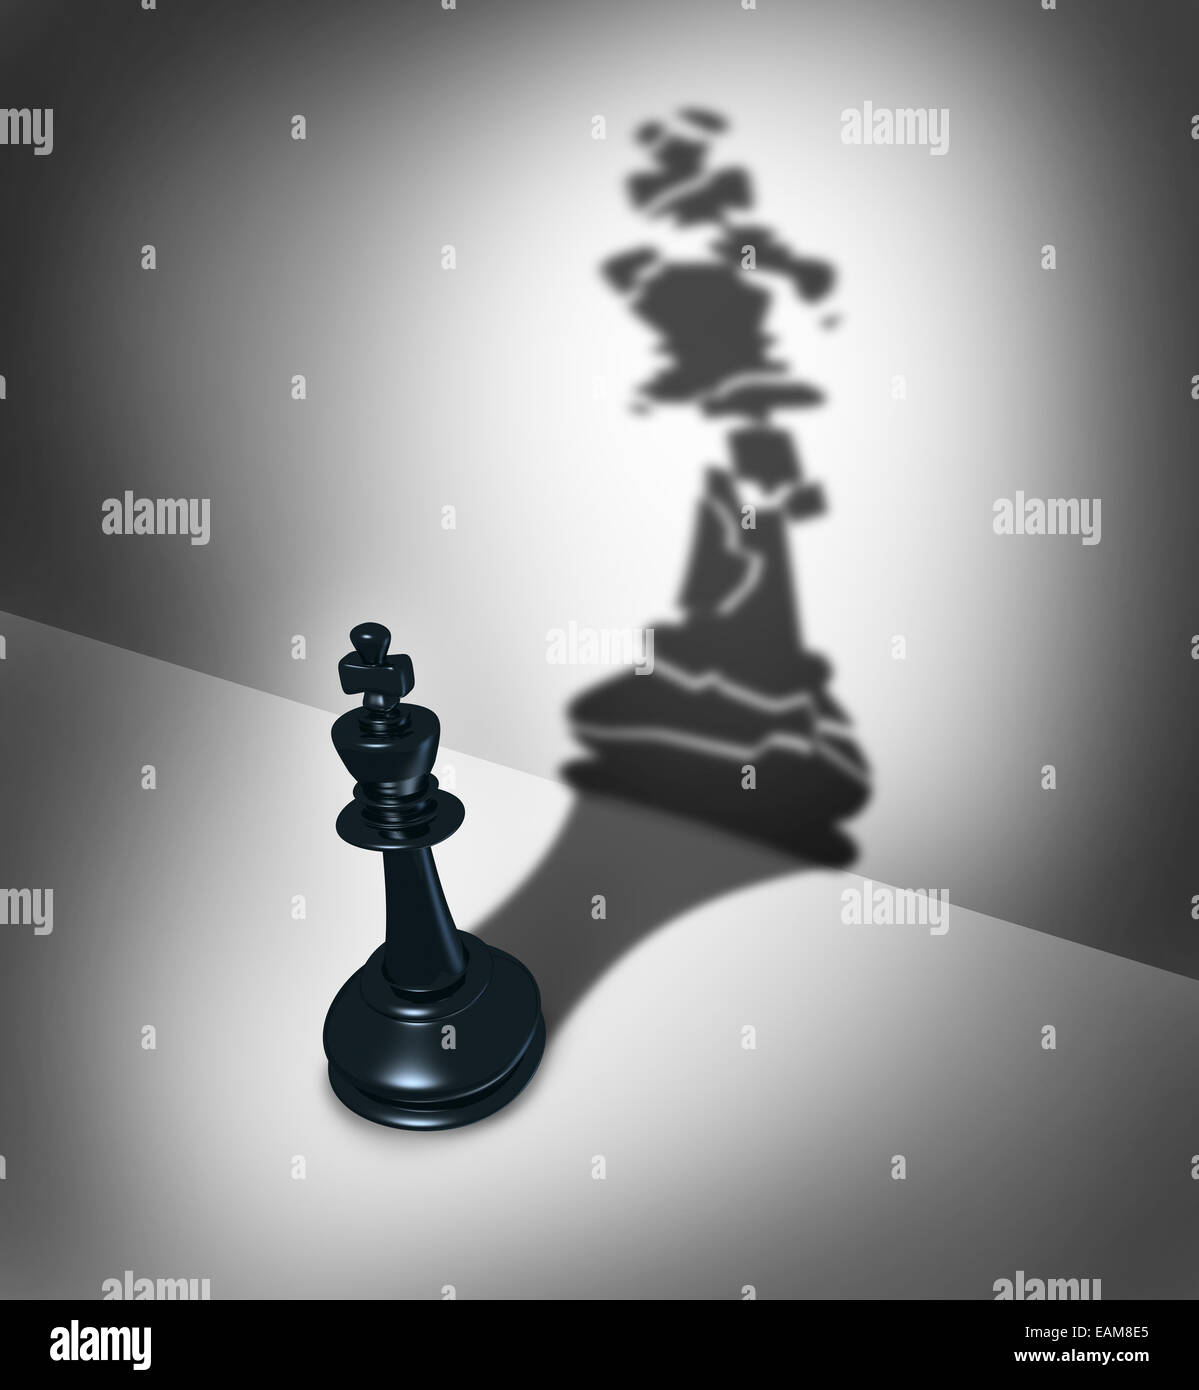 Broken leadership business crisis concept and weak leader metaphor as a three dimensional chess piece casting a - Stock Image